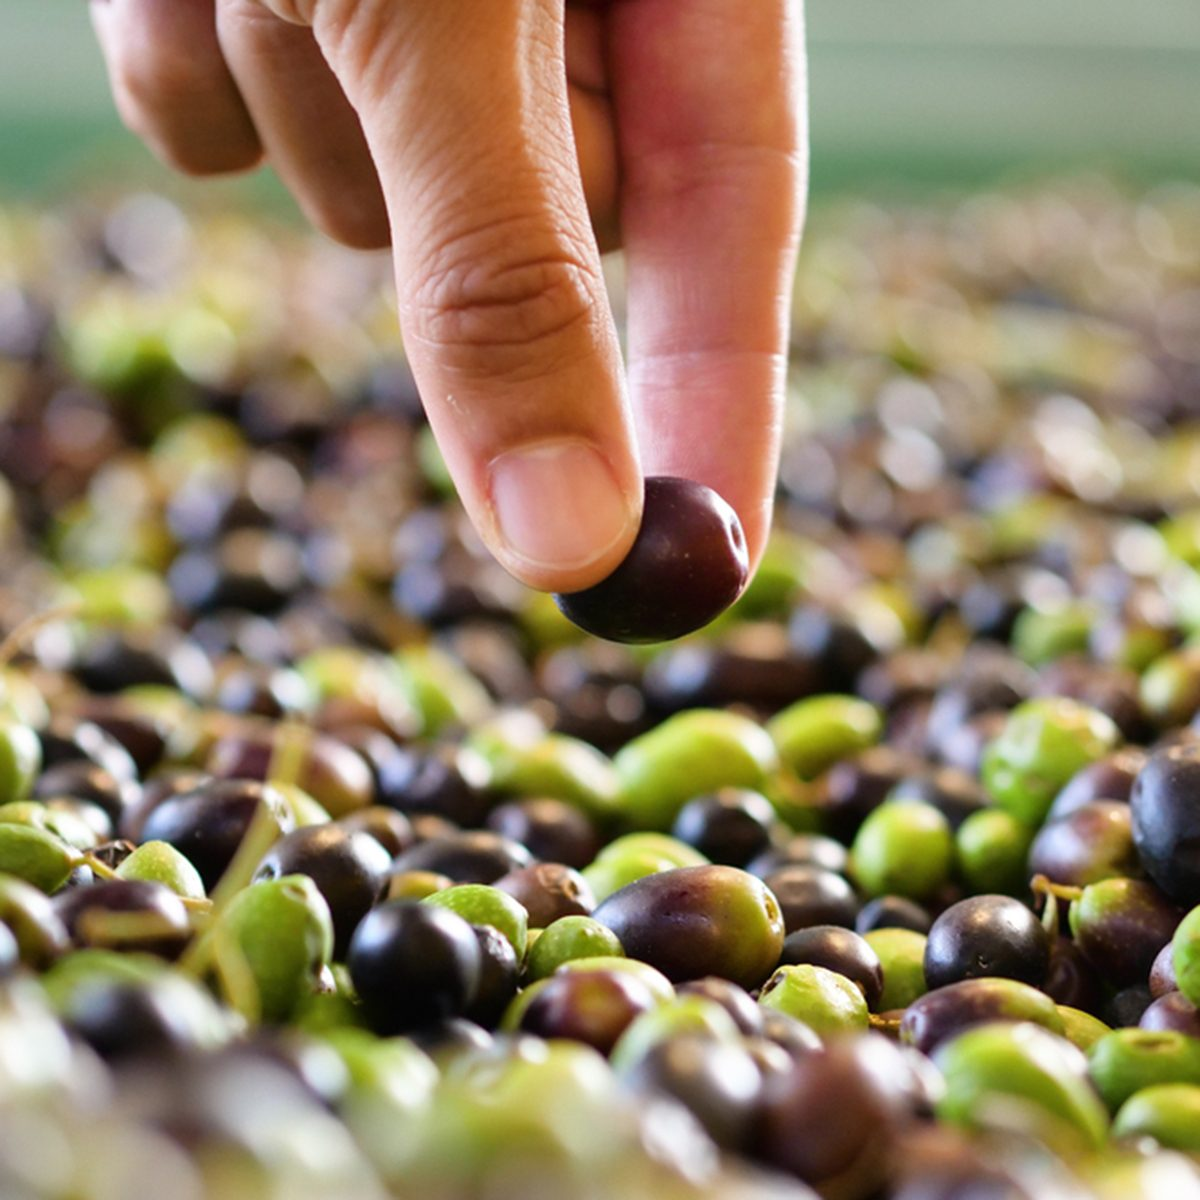 One hand takes in the hands of the olives that have just fallen from the tree for the production of extra virgin olive oil produced in italy to control the quality.